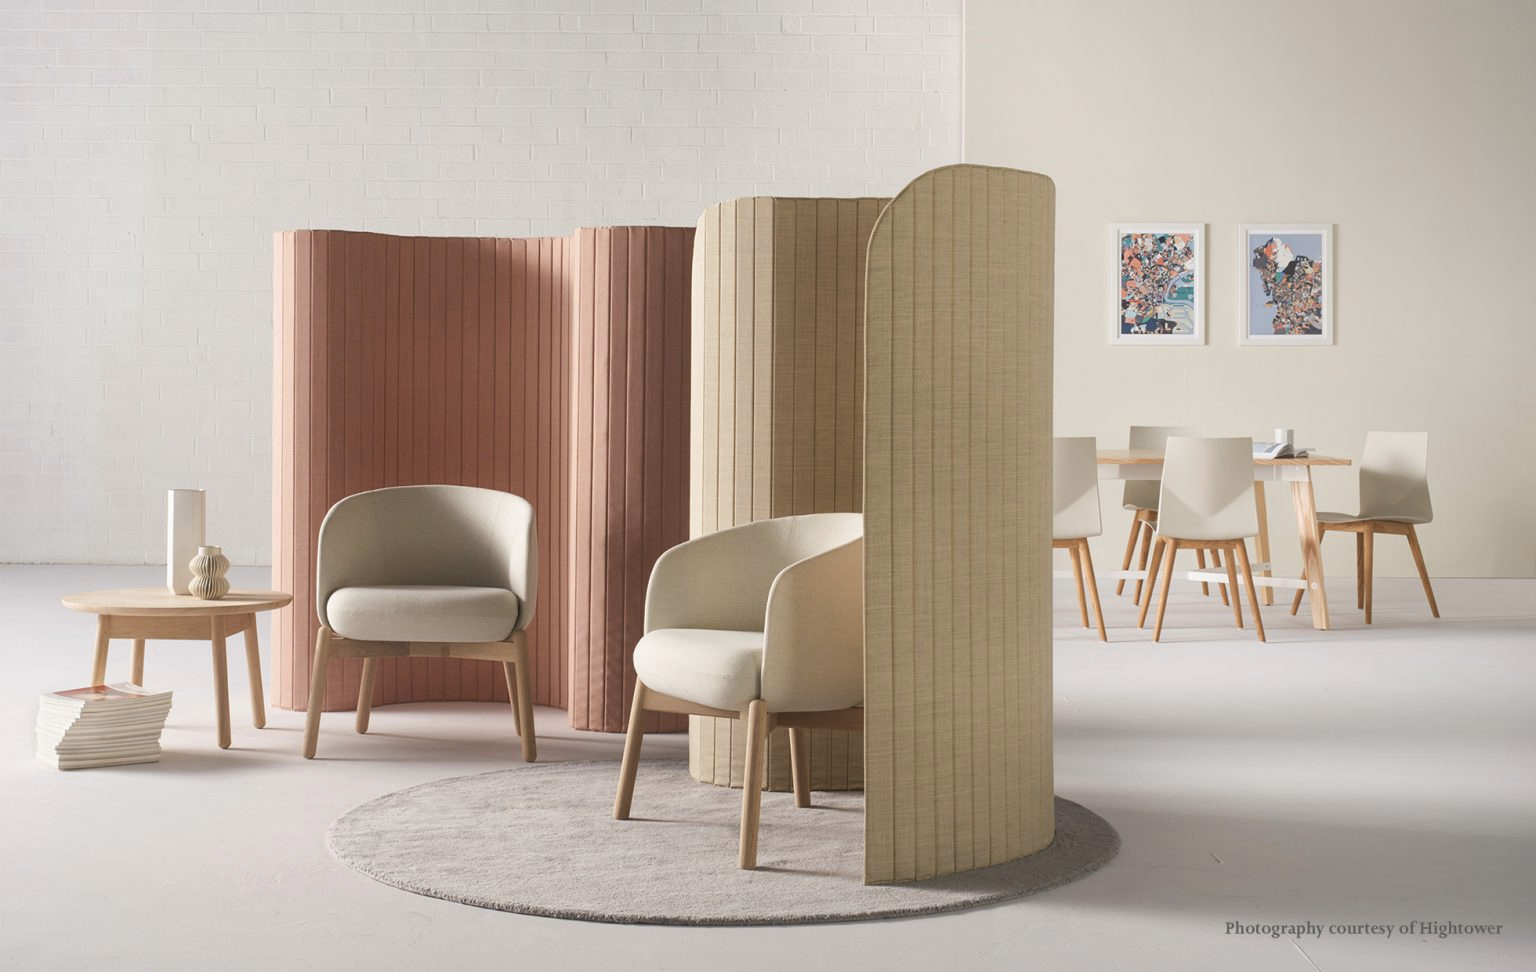 Focus office divider is a tactile mobile partition system that creates micro-pods for workers in open plan spaces. A table top version is also available to further divide spaces.